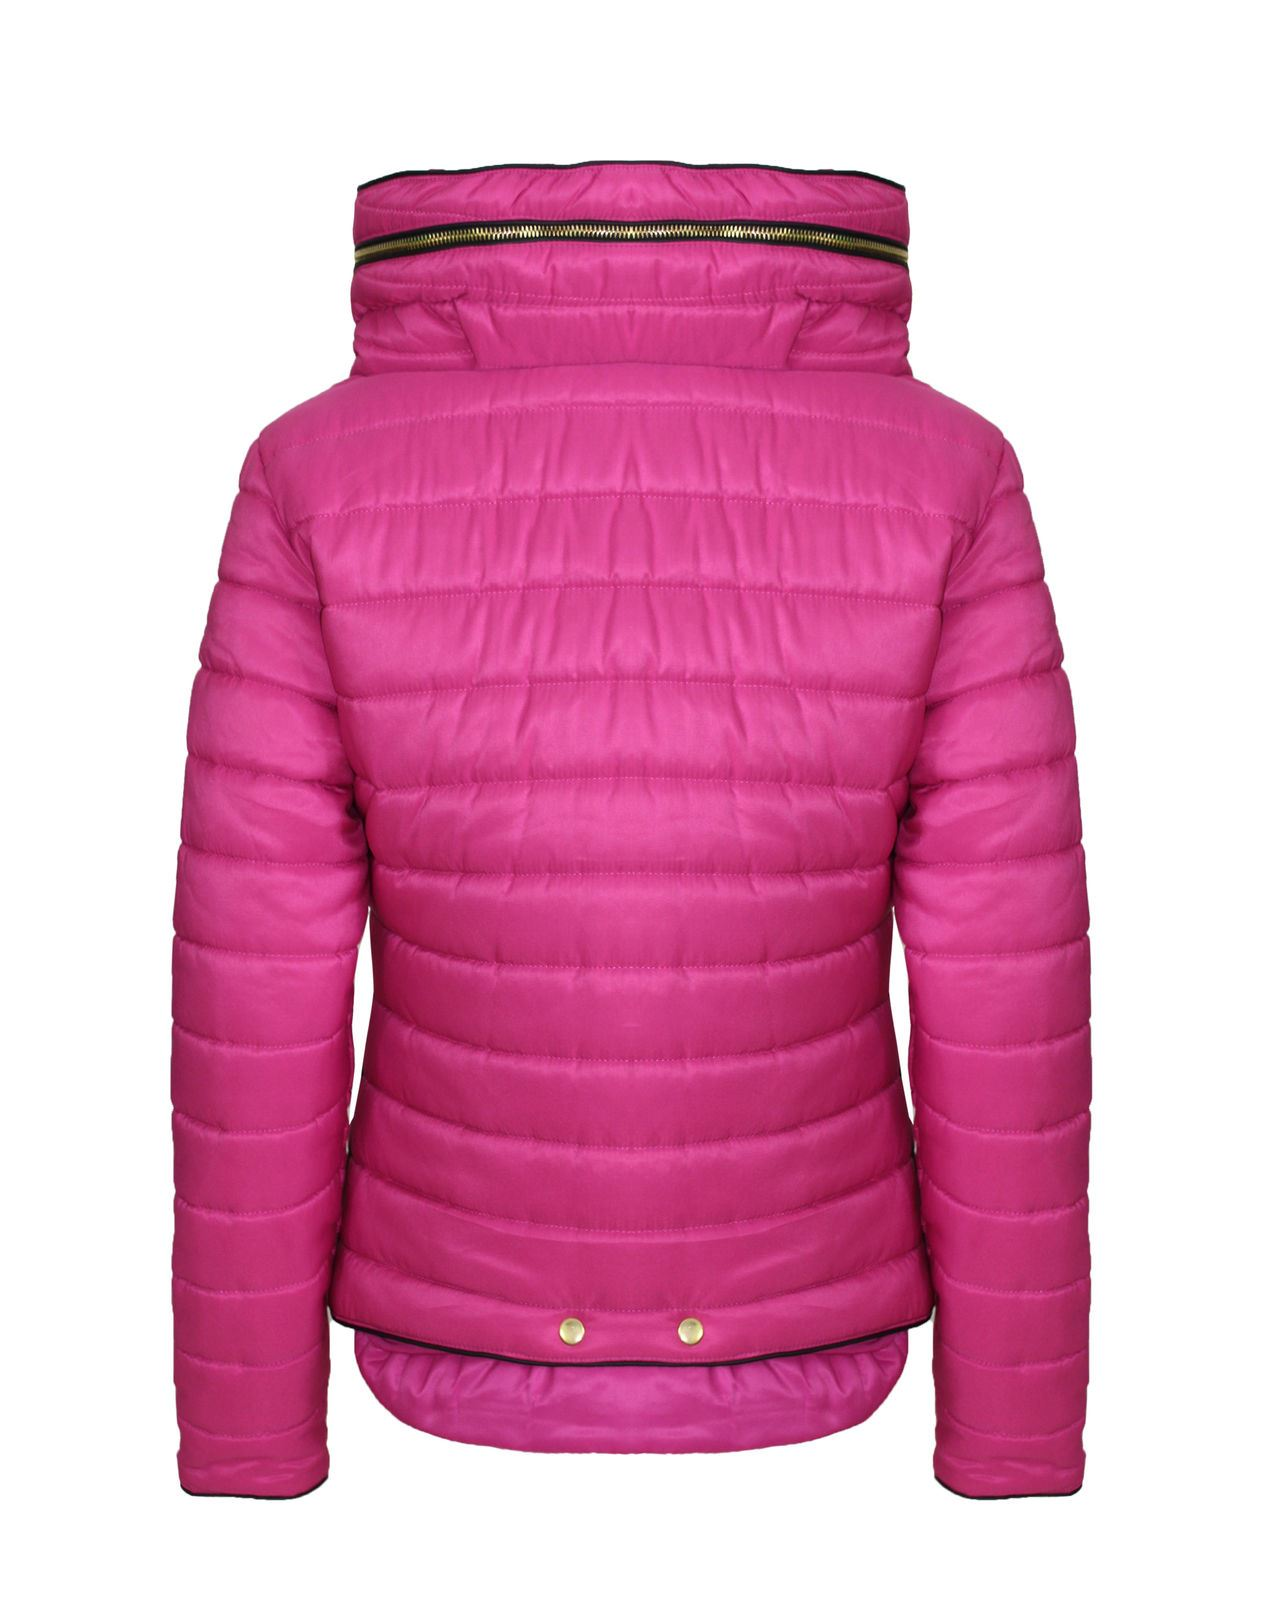 Womens padded jacket with hood